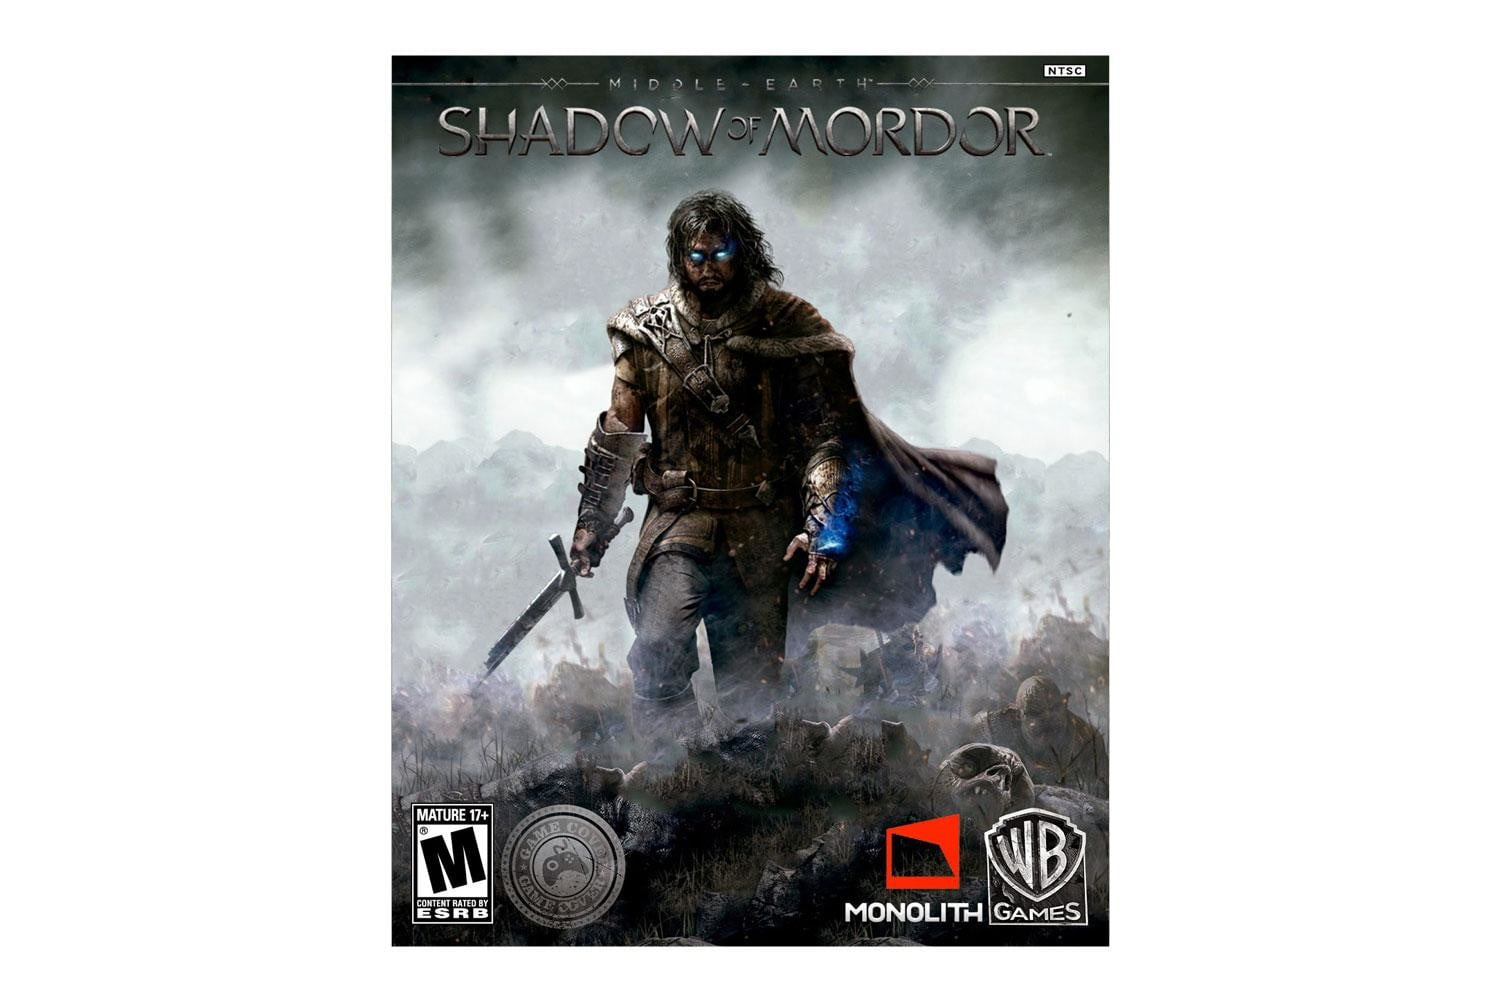 Middle-earth-Shadow-of-Mordor-cover-art